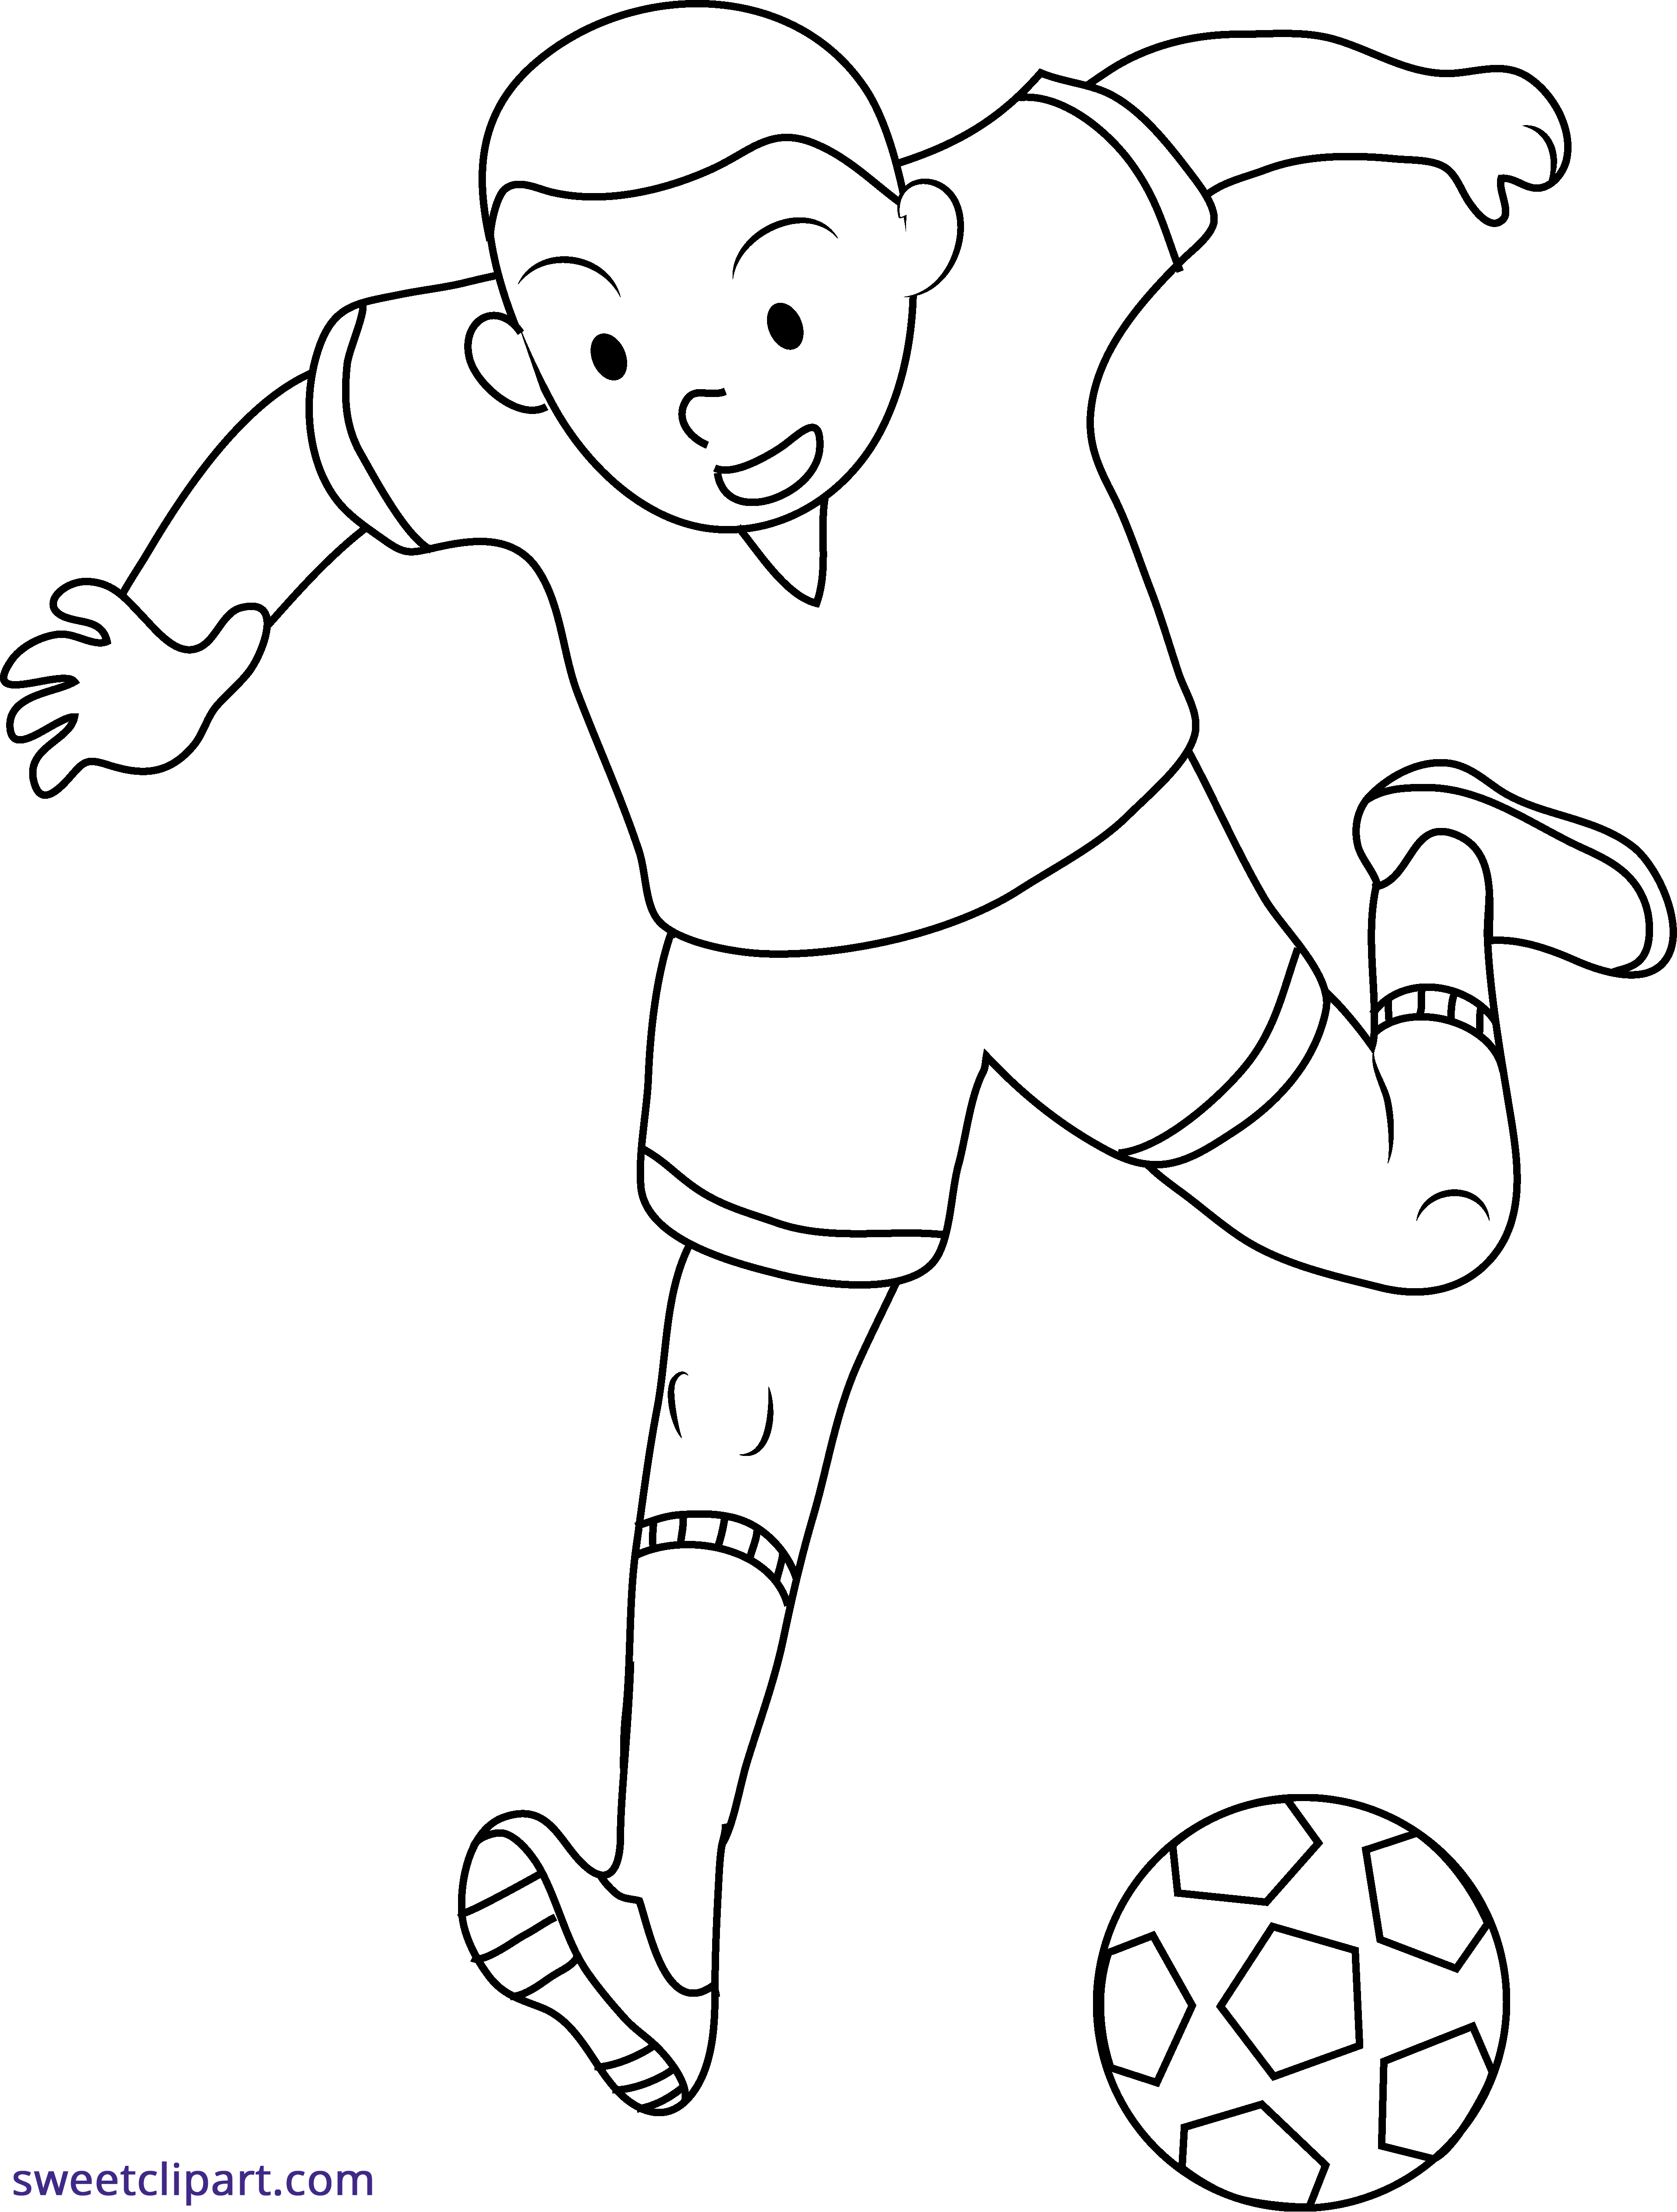 Football player clipart black and white kids graphic royalty free download Kid Playing Soccer Line Art Clipart - Sweet Clip Art graphic royalty free download